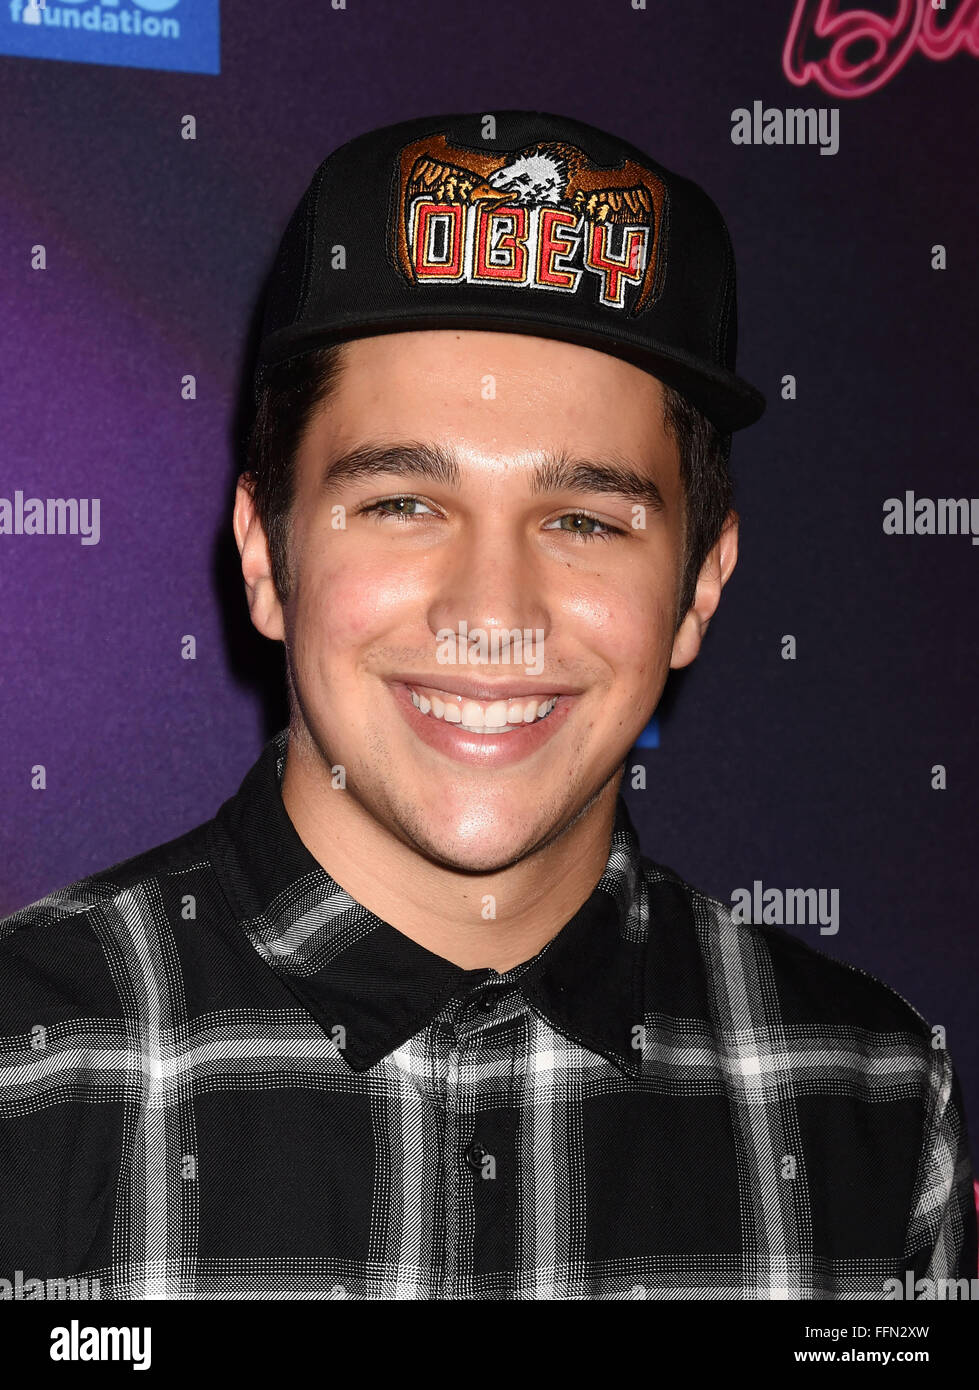 Musician Austin Mahone attends the Barbie Rock 'N Royals Concert Experience at the Hollywood Palladium on September - Stock Image